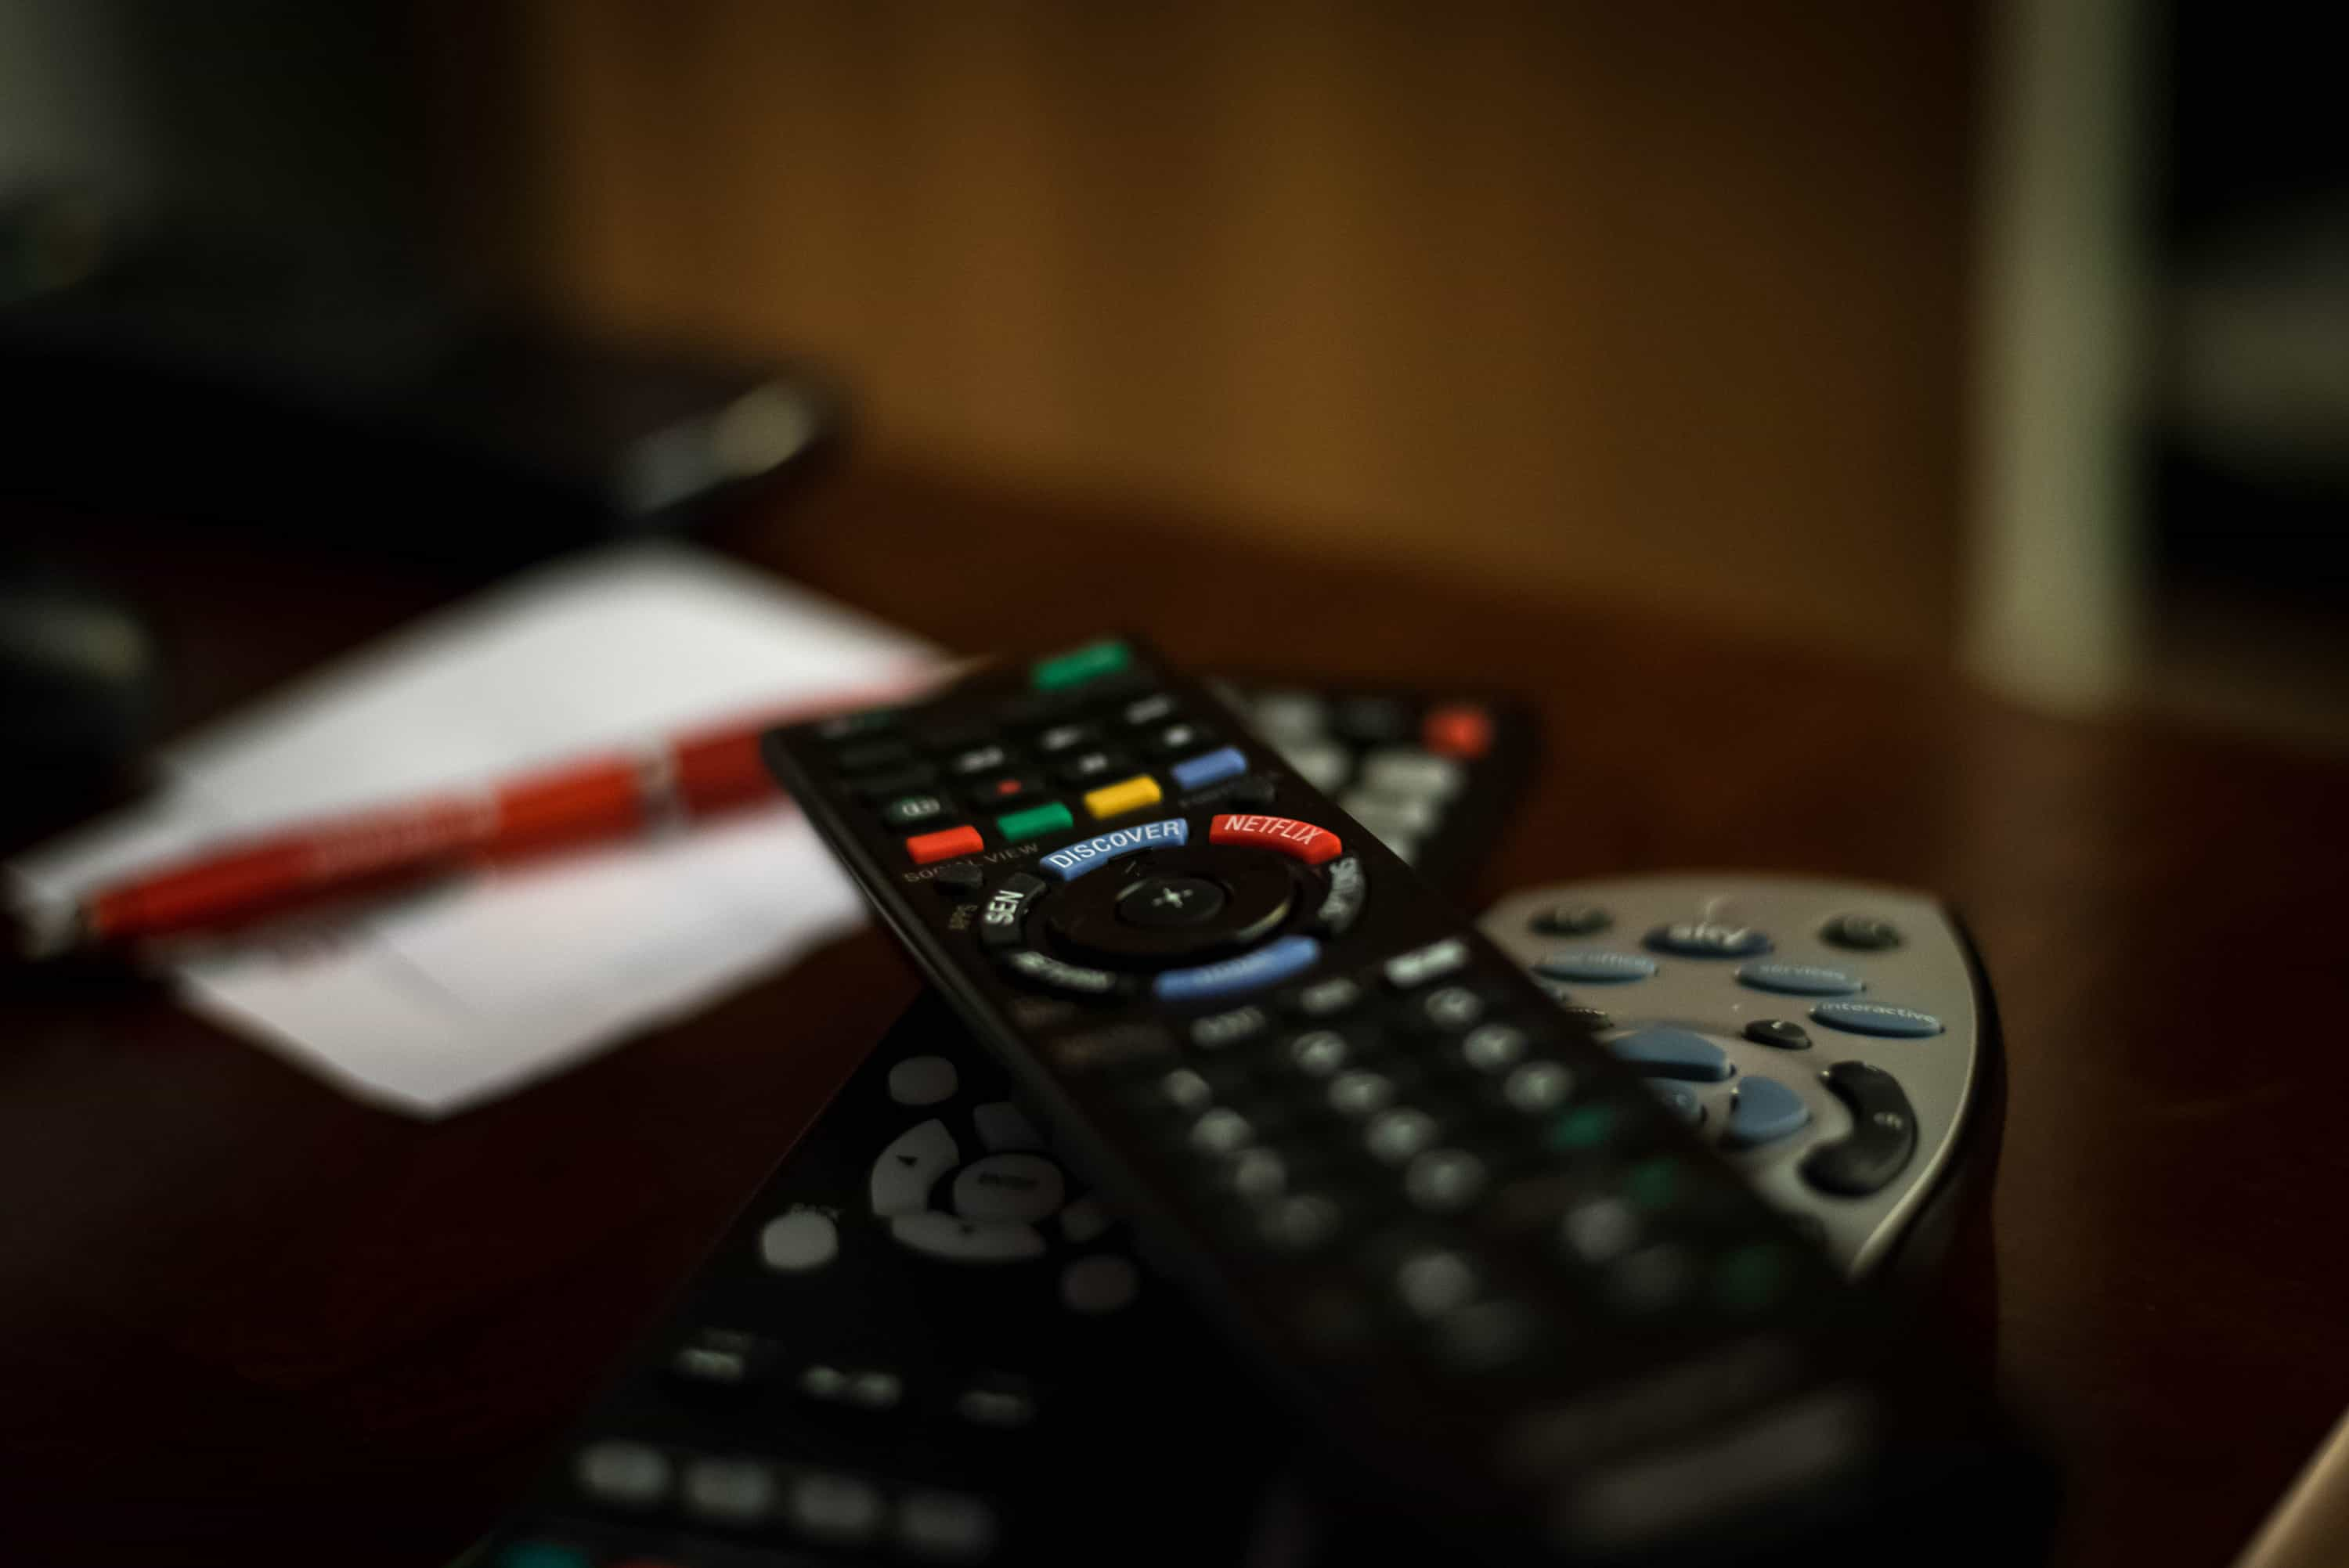 How to Hack a Hotel TV to Watch Netflix, Amazon Prime, Hulu